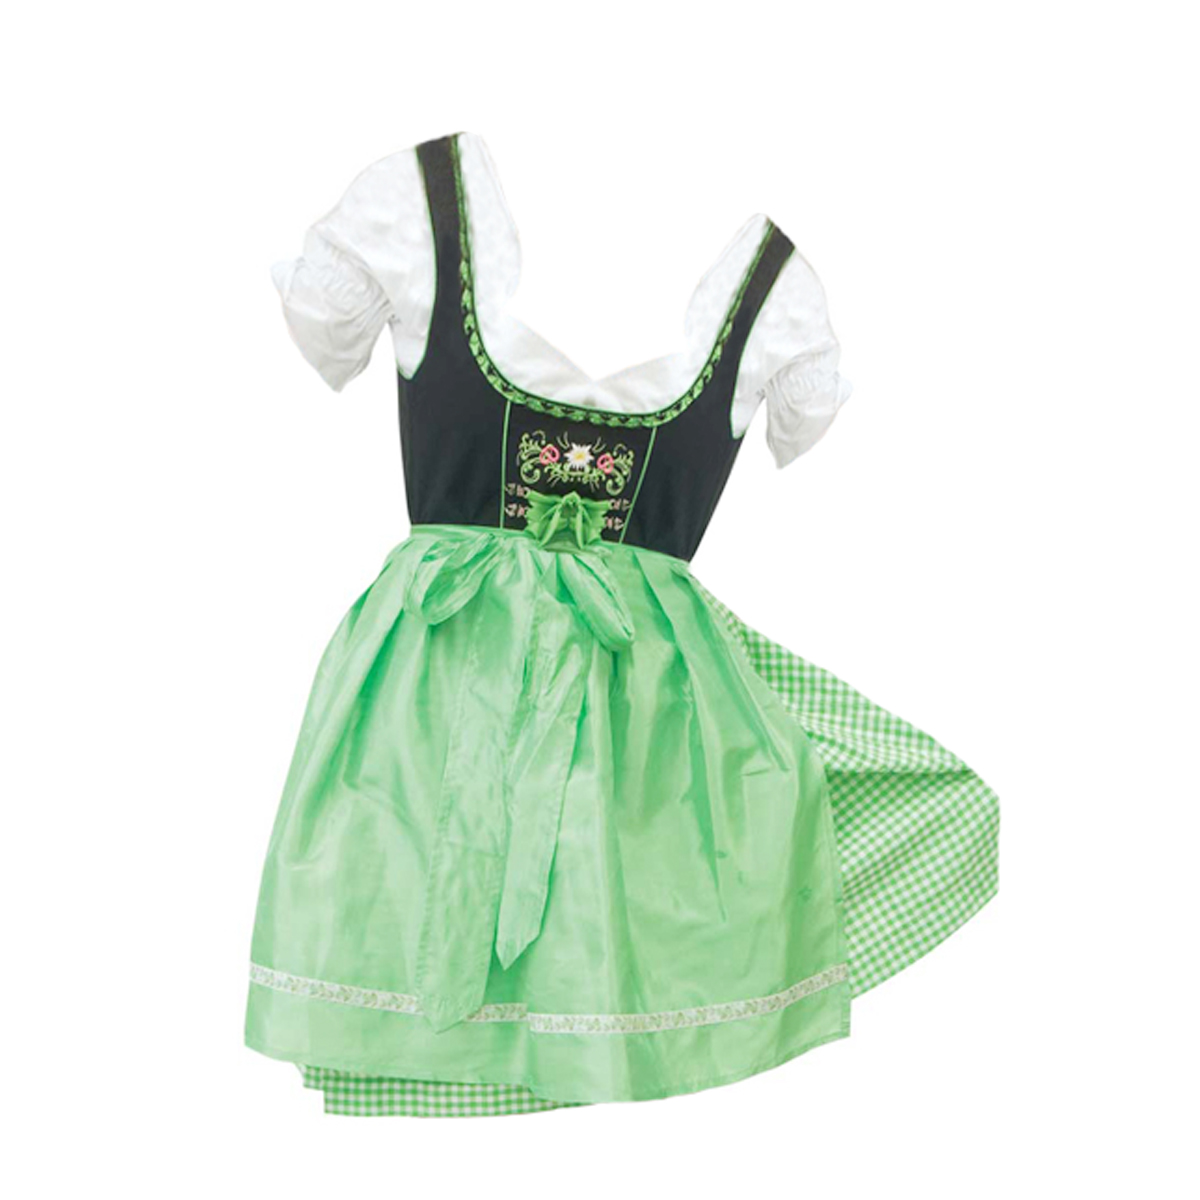 BLACK / GREEN CHECKERED DIRNDL WITH FLOWERS